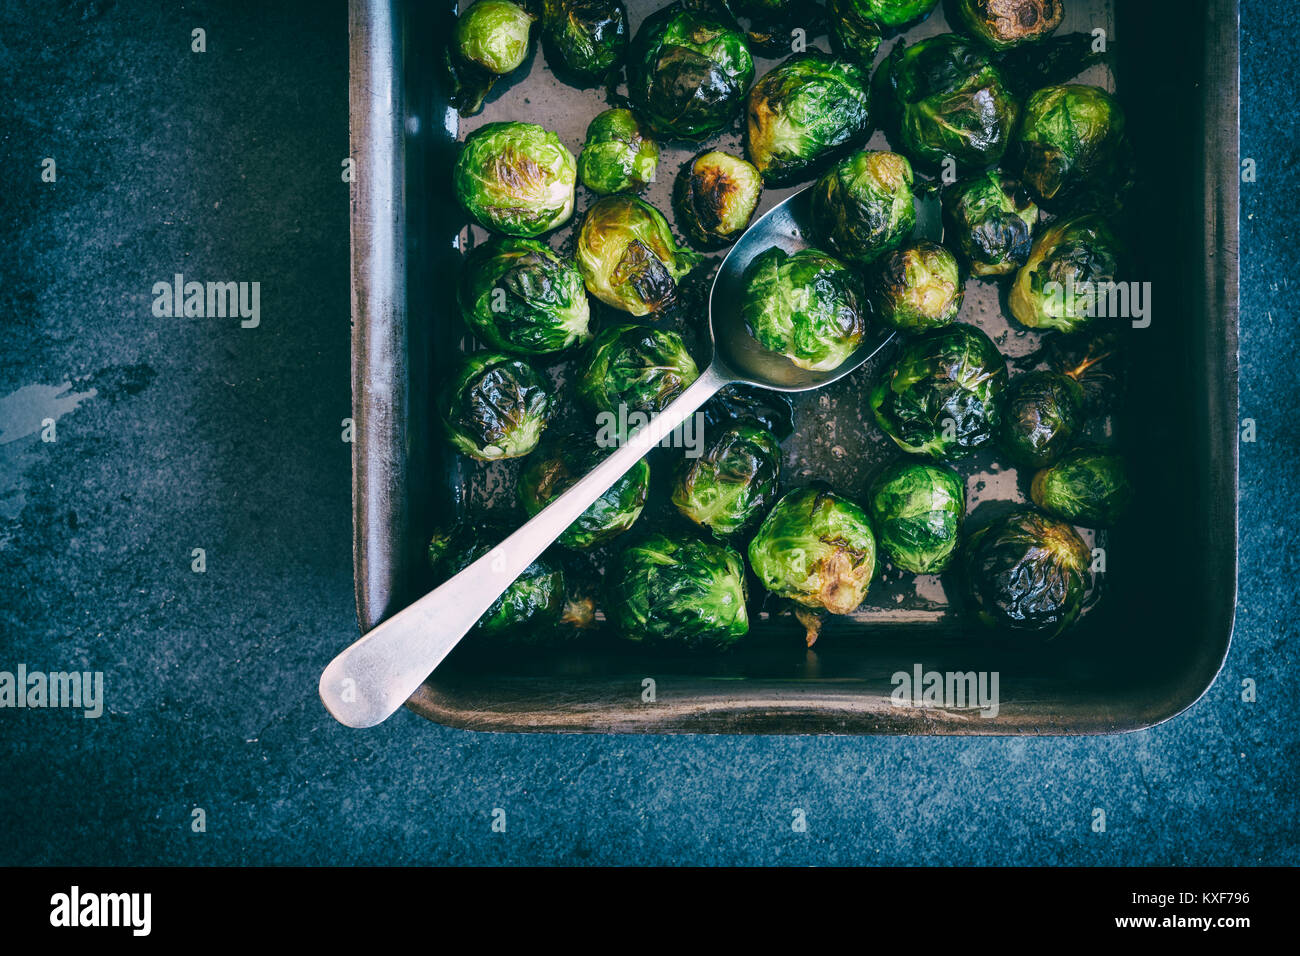 Brassica oleracea. Roasted Brussel sprouts in a baking tray with spoon on a slate background. Vintage filter applied - Stock Image